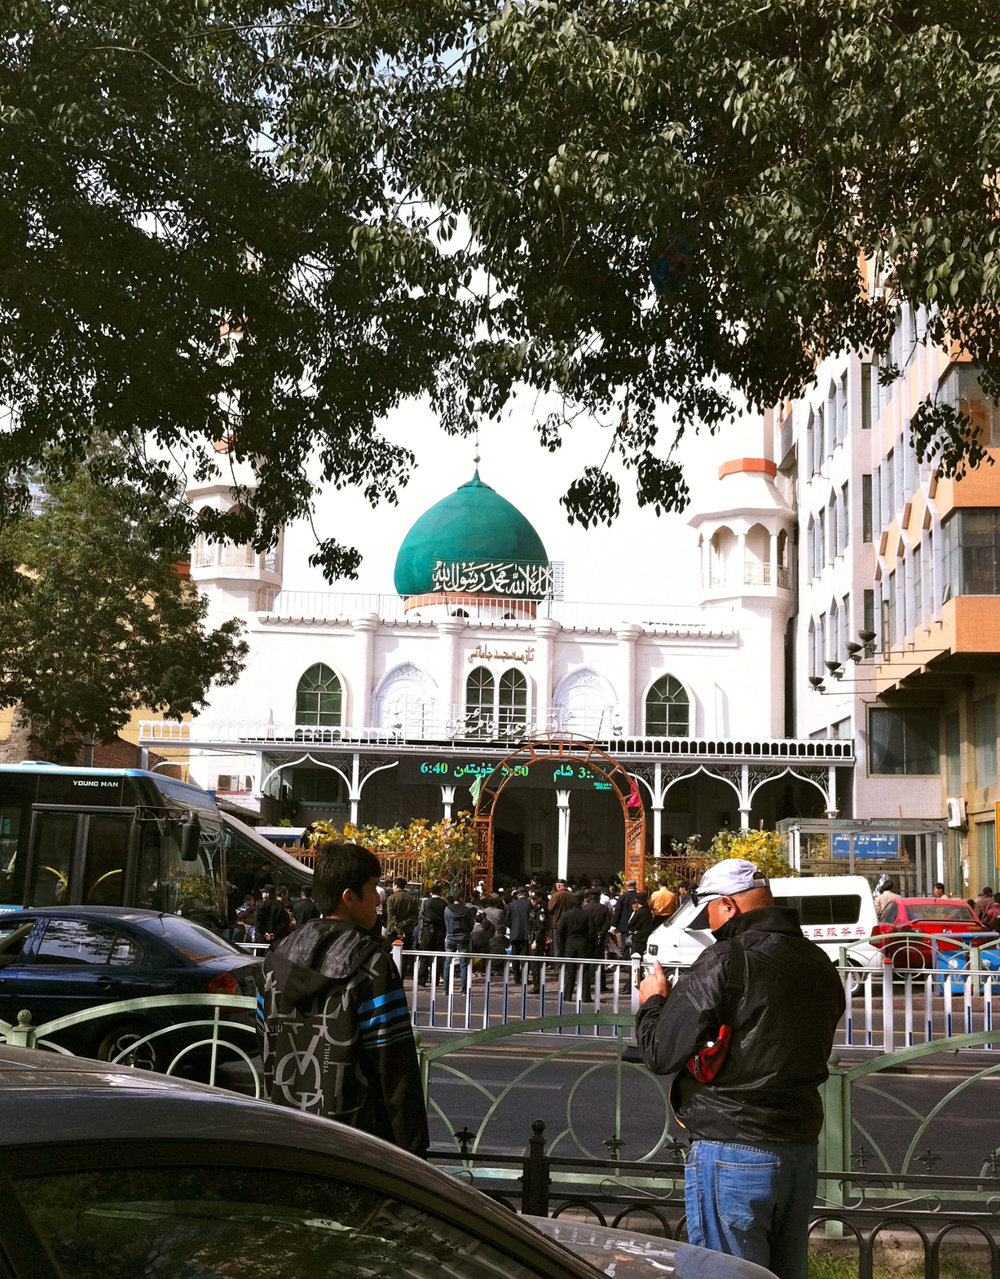 When I visited in october 2011, police were carrying firearms after several riots between Han and Uyghurs. Tourists were not allowed to take pictures in front of the mosque…